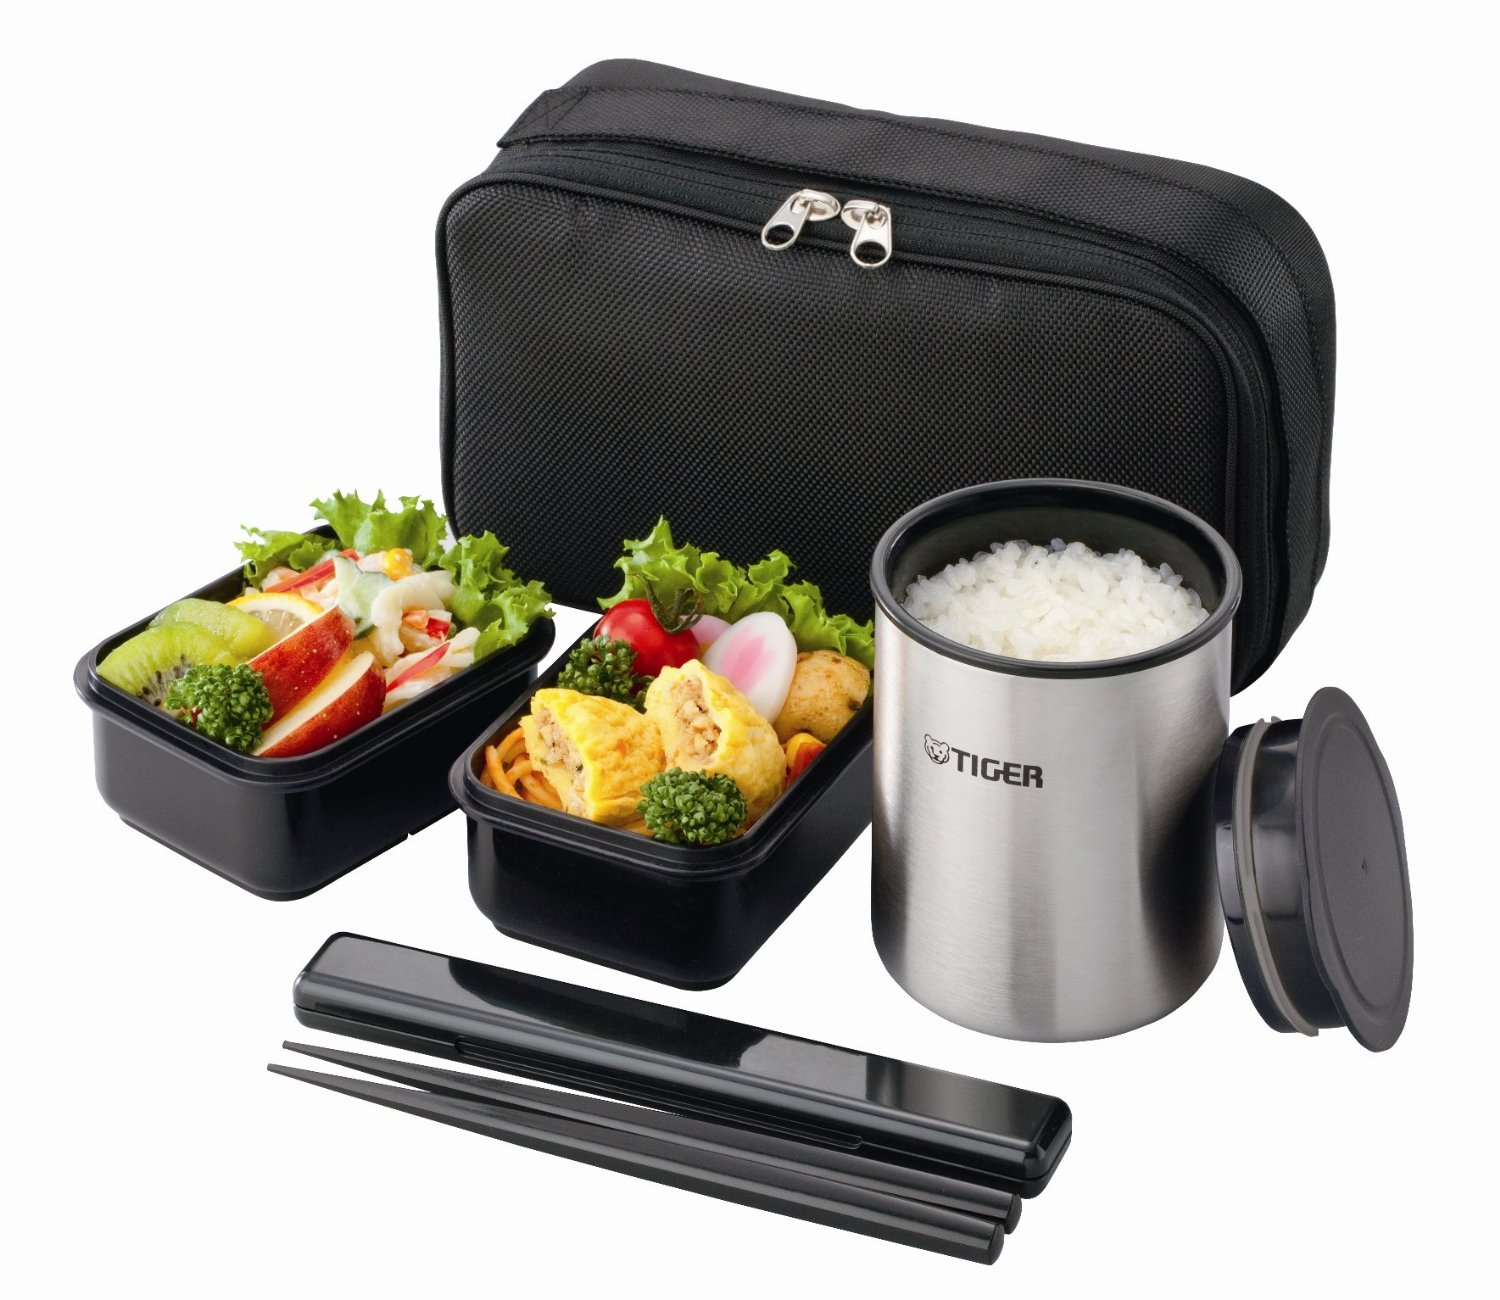 f s thermos lunch box tiger vacuum stainless steel bento bottle lwy r030 k ebay. Black Bedroom Furniture Sets. Home Design Ideas